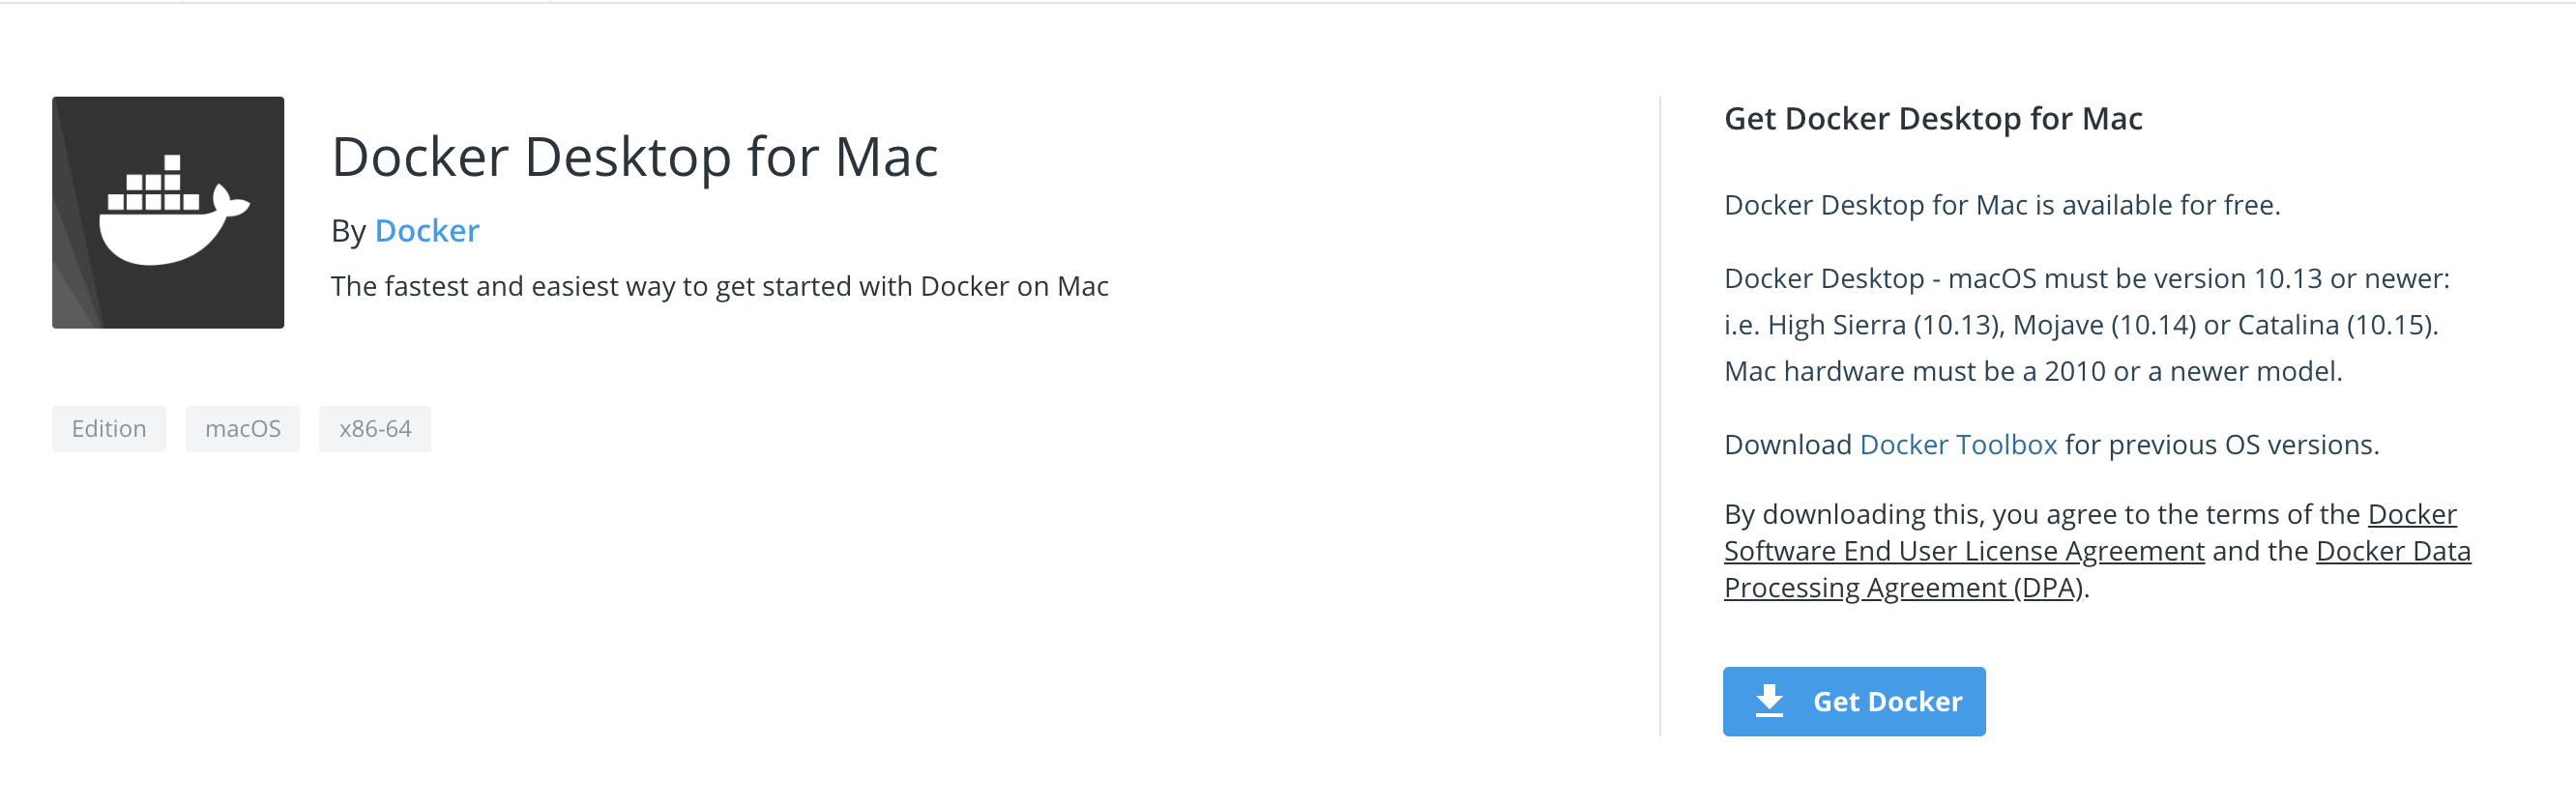 """Docker for Mac"" download page. Click Get Docker to download and get started."